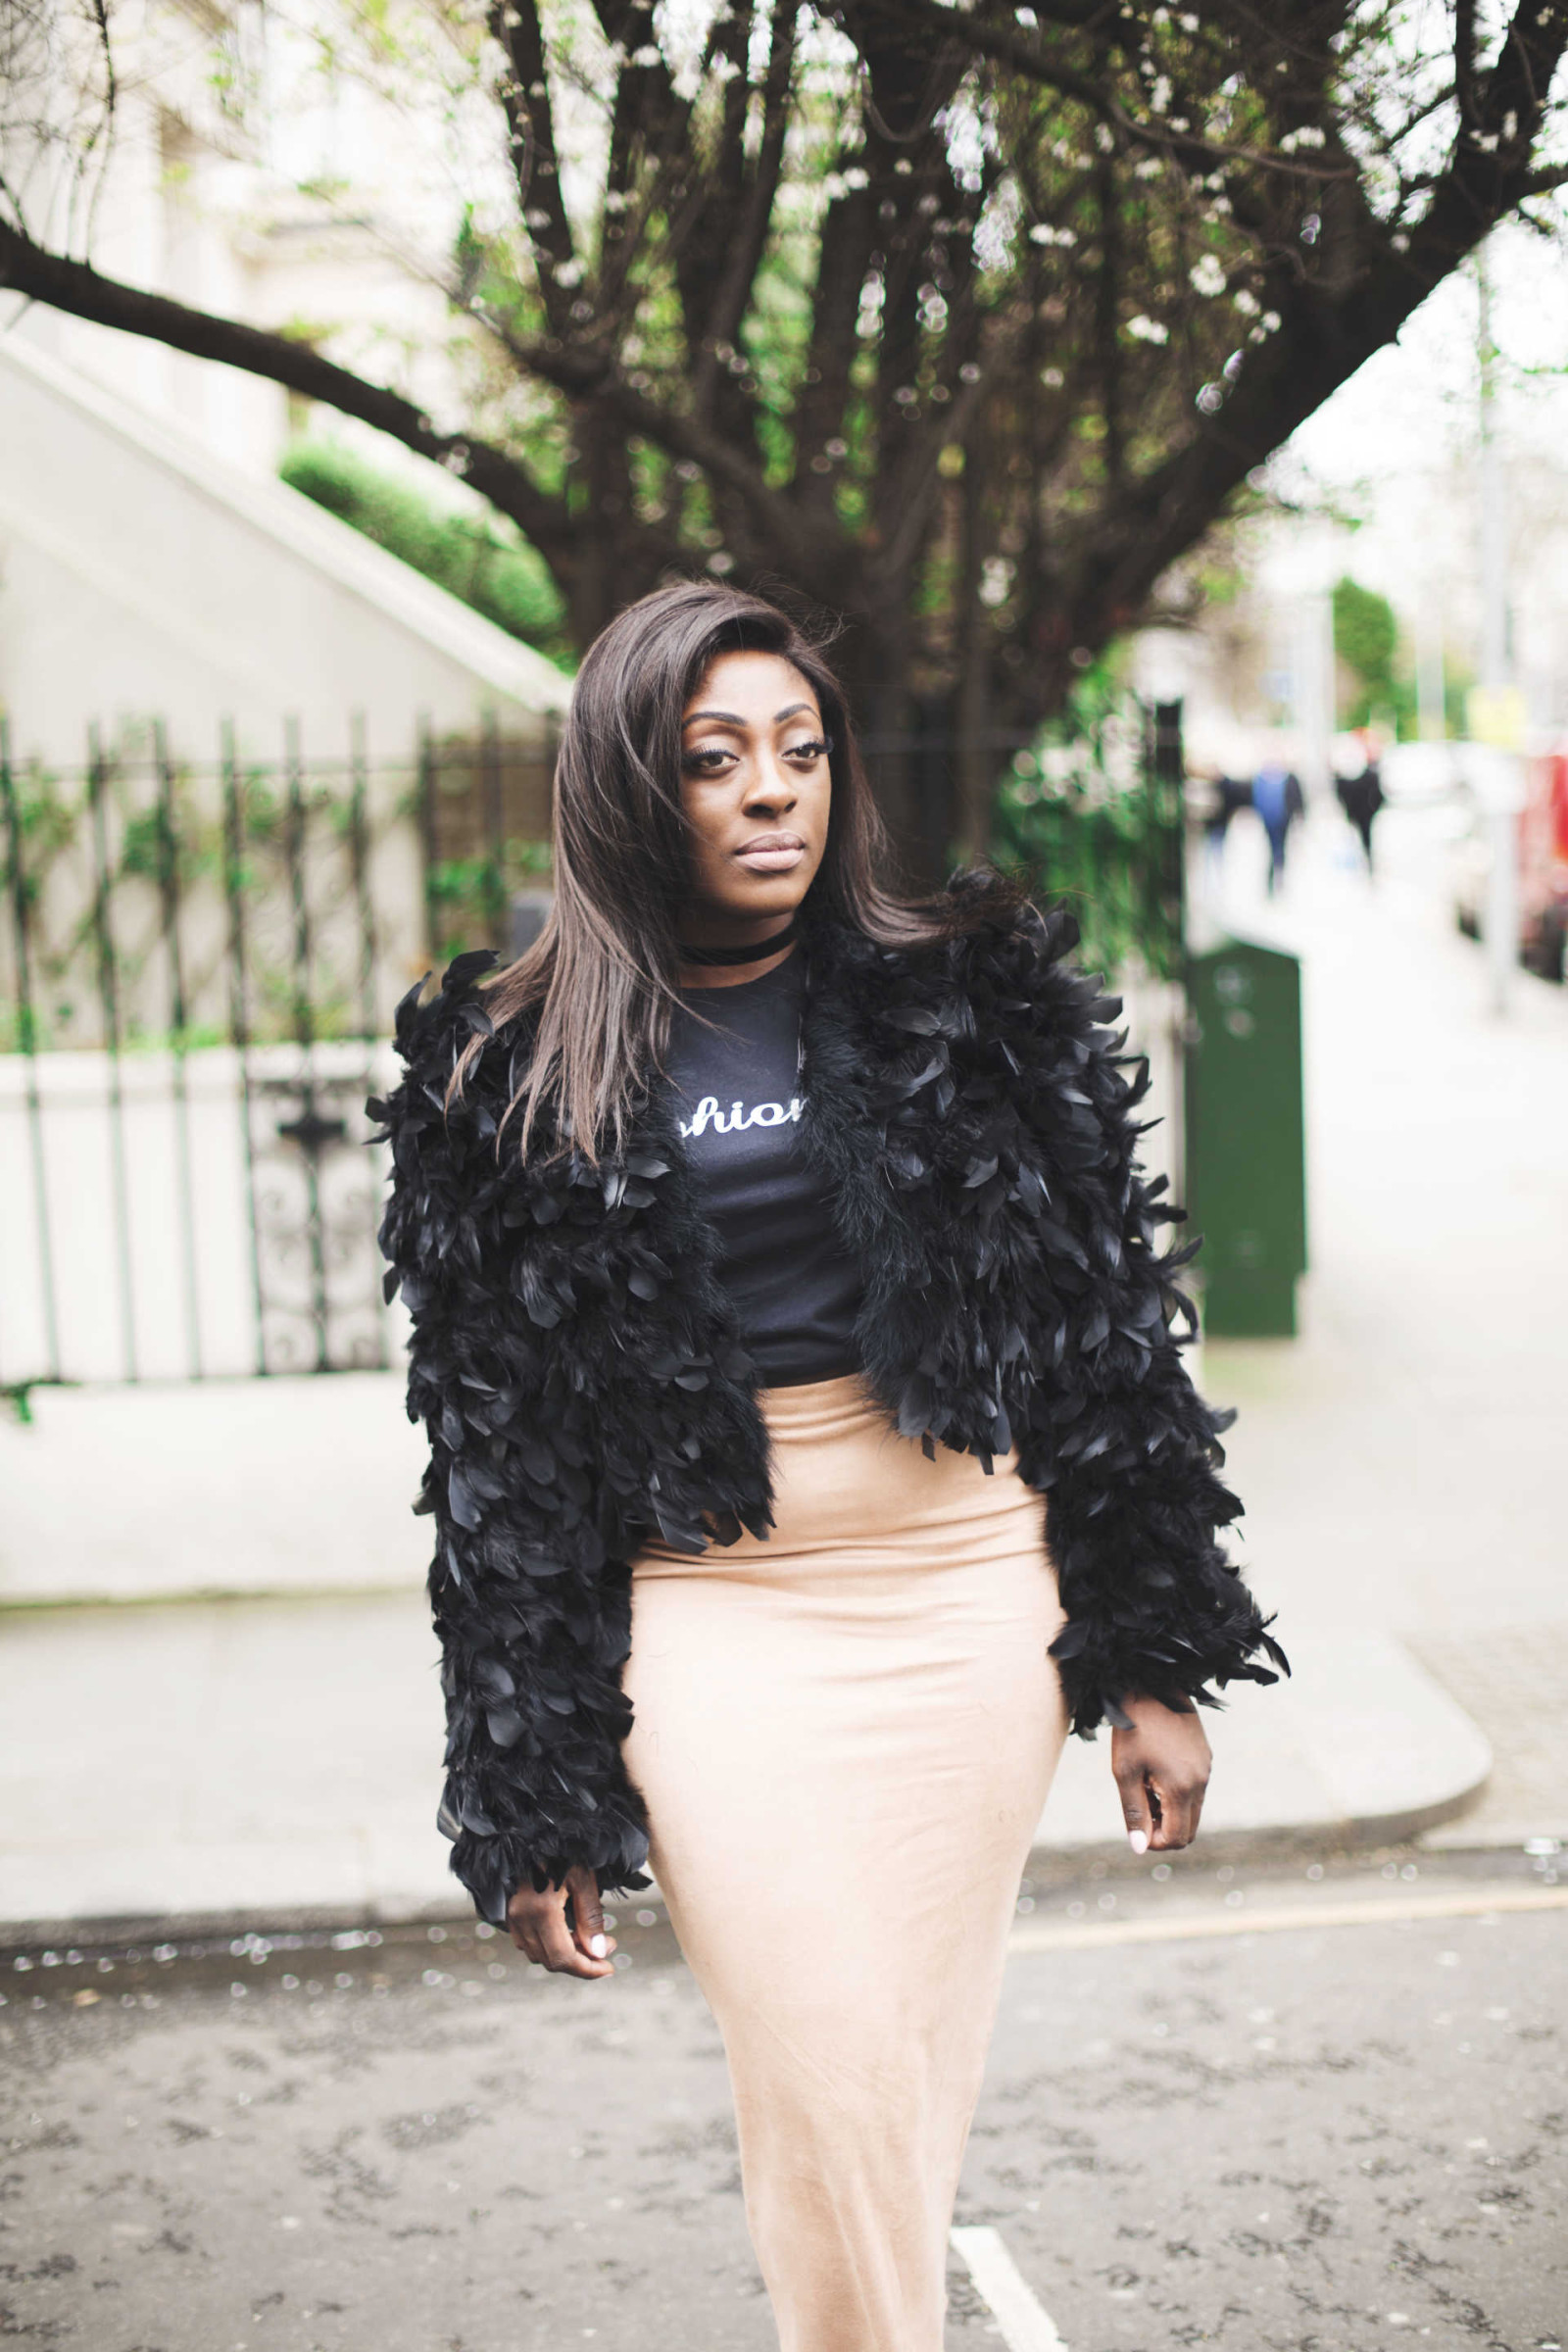 Midi skirt & jacket - style and the sass